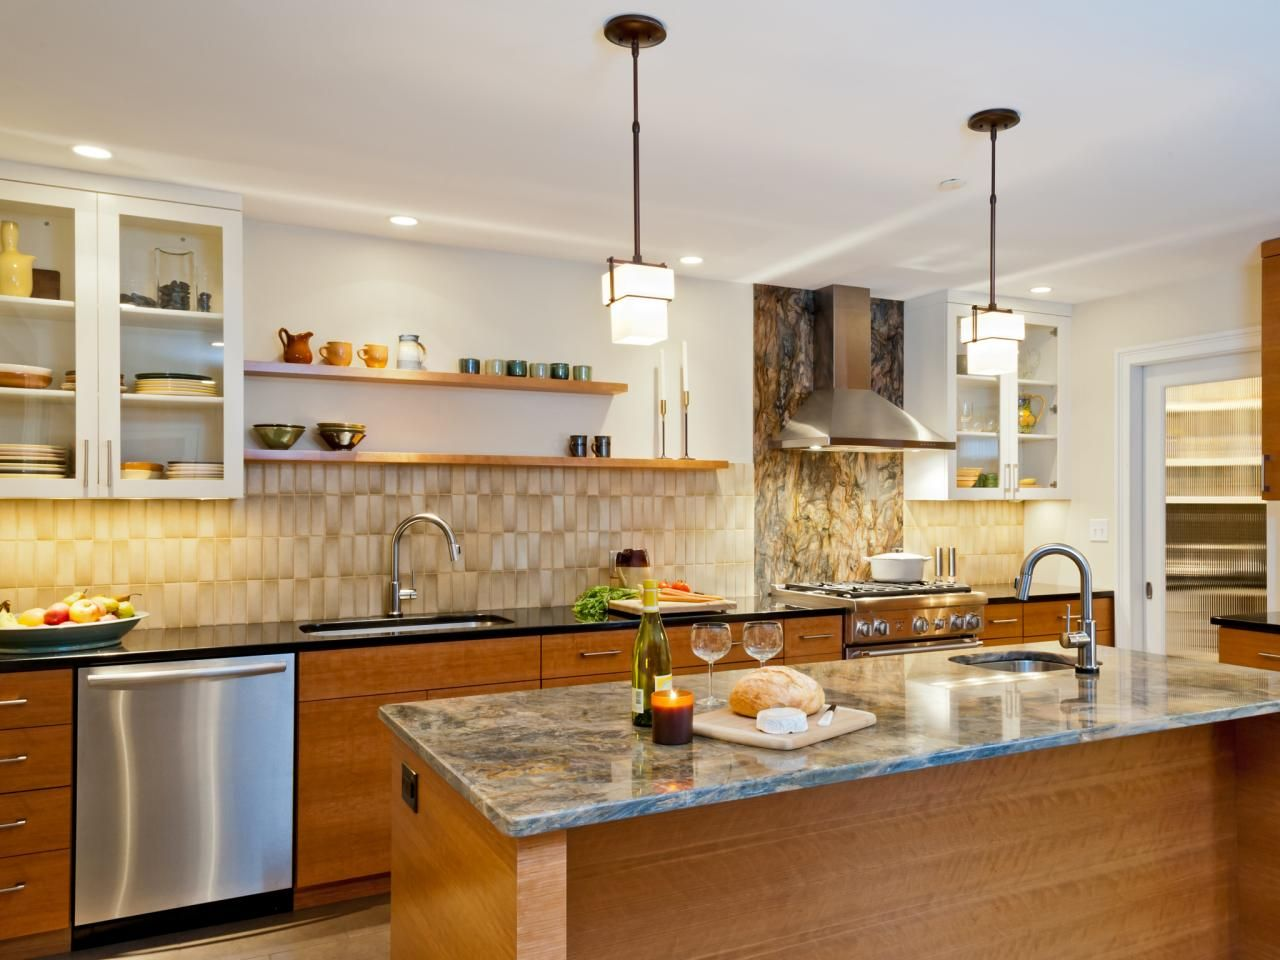 15 Design Ideas For Kitchens Without Upper Cabinets Kitchens